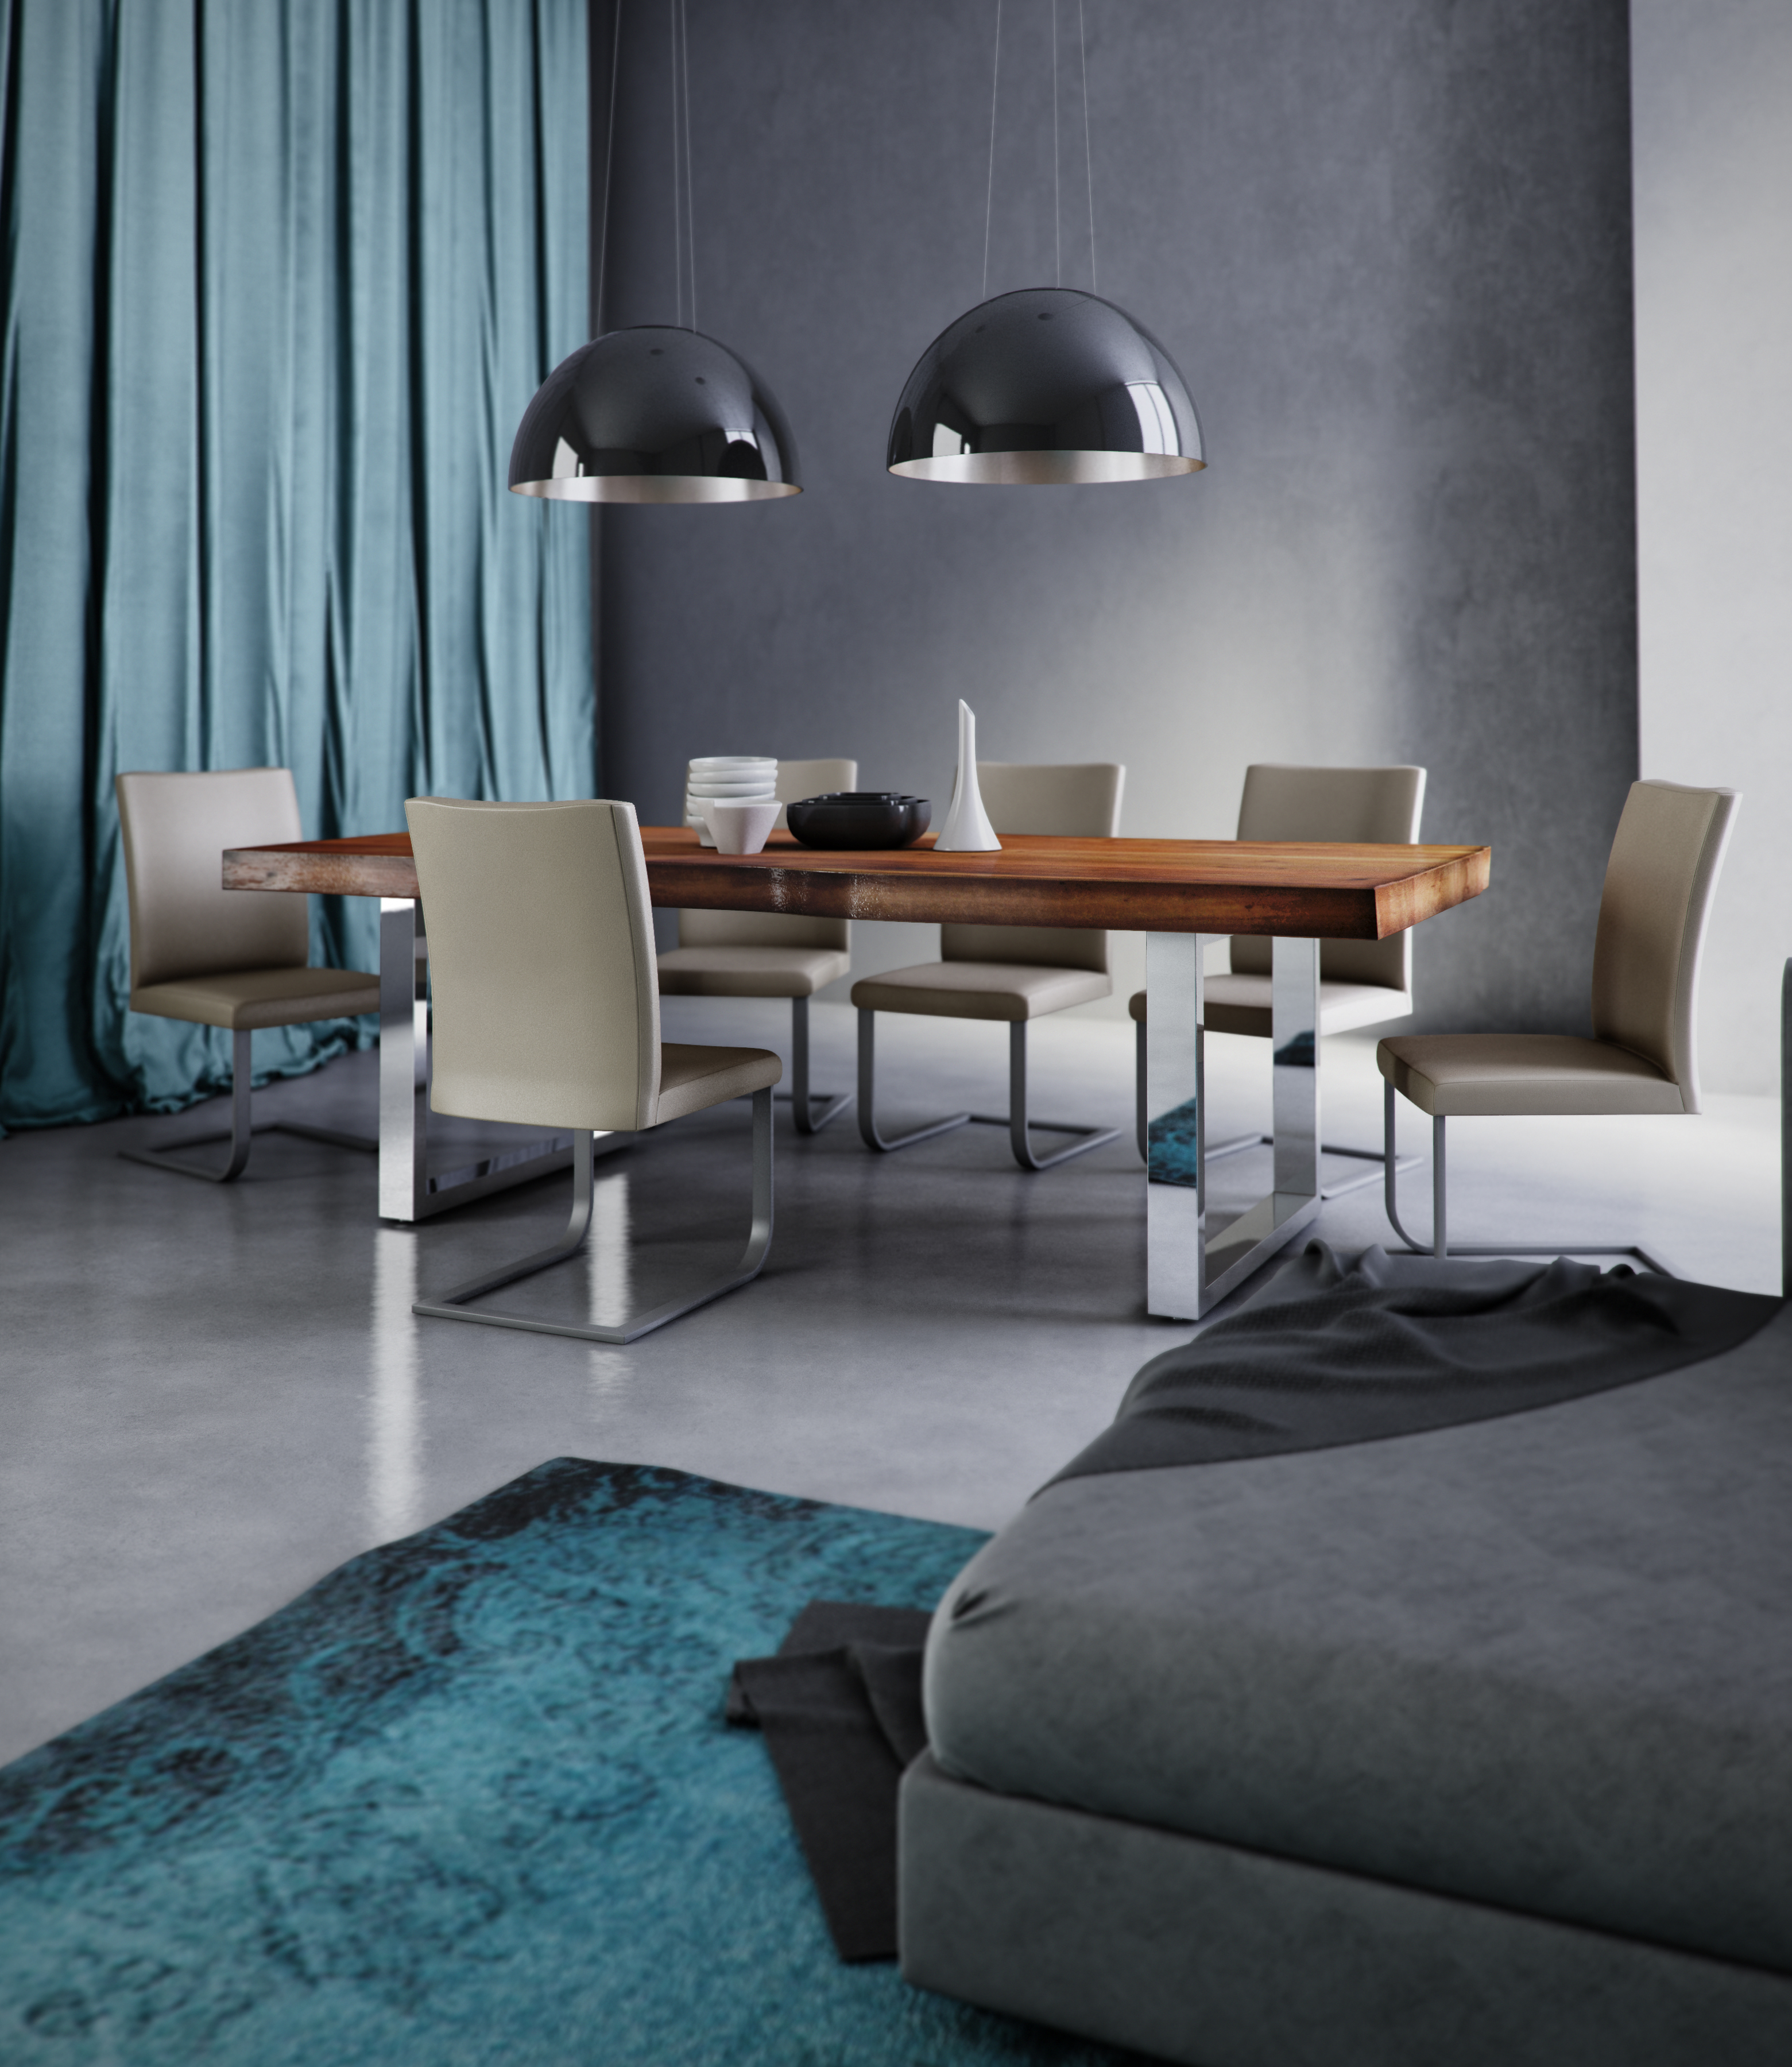 TABLE TOM+CHAISE LUANA